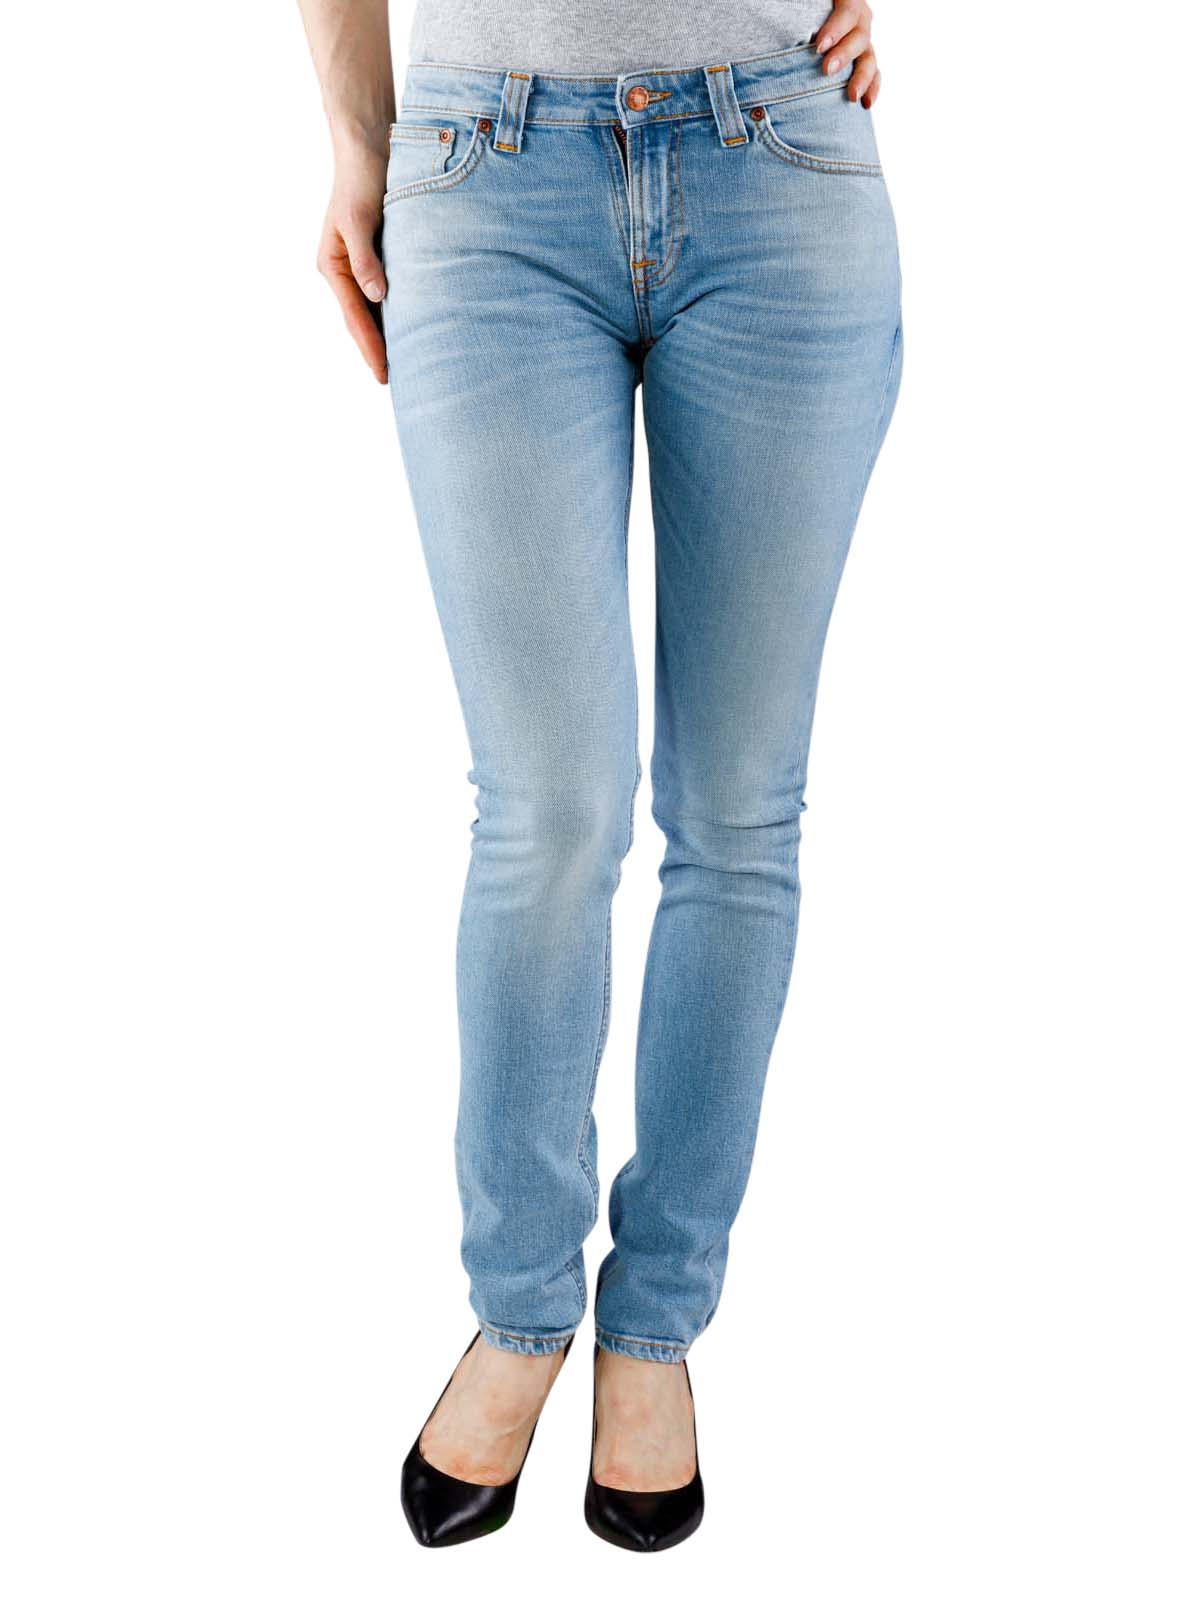 acf142b327e665 Fast Delivery | Nudie Jeans Skinny Lin blonde orange ... - McJeans.ch